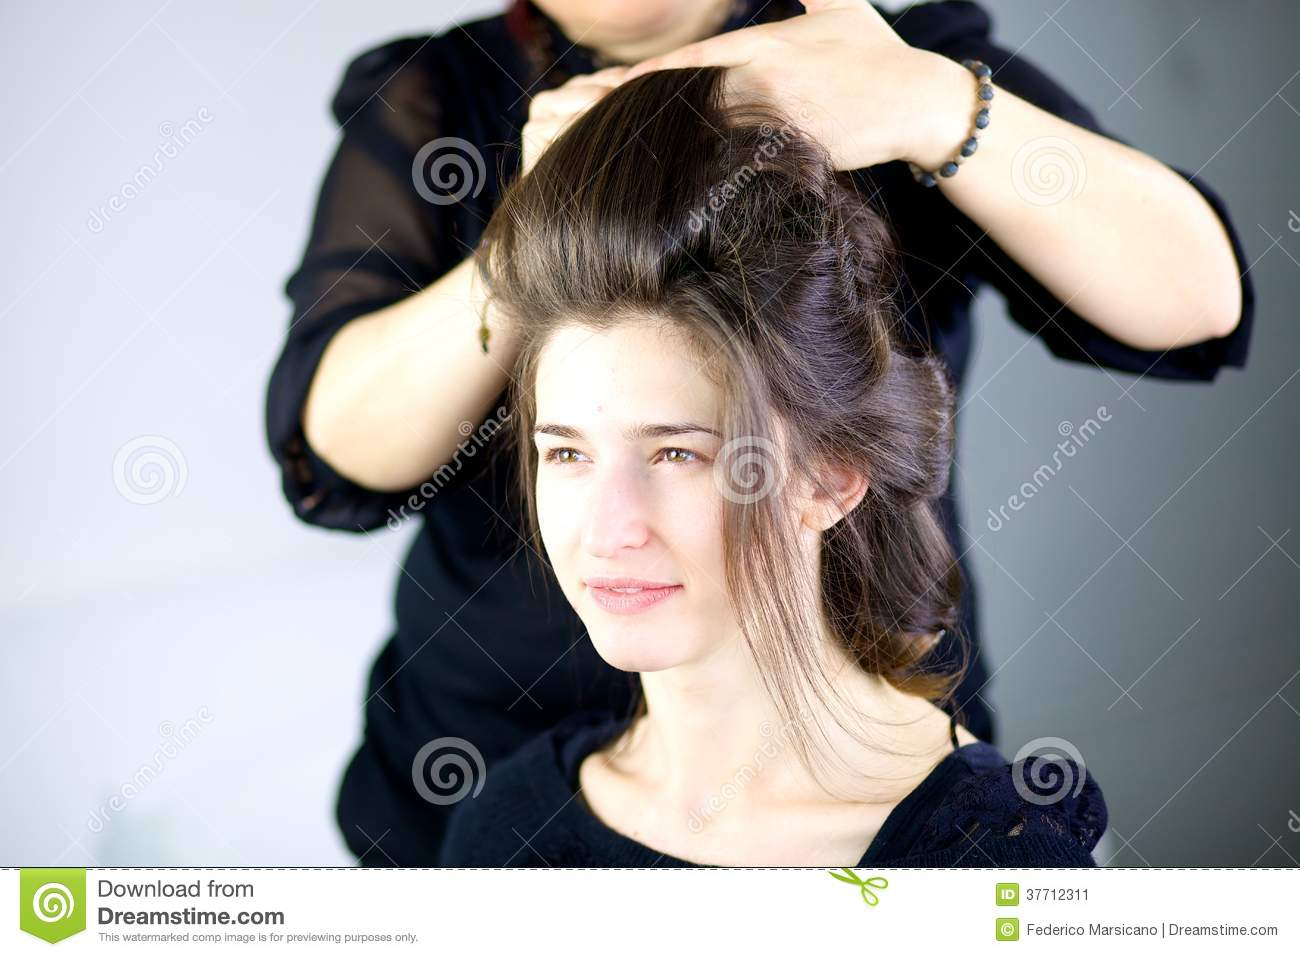 beautiful female model getting hair done by professional hairstylist - Professional Hairstylist